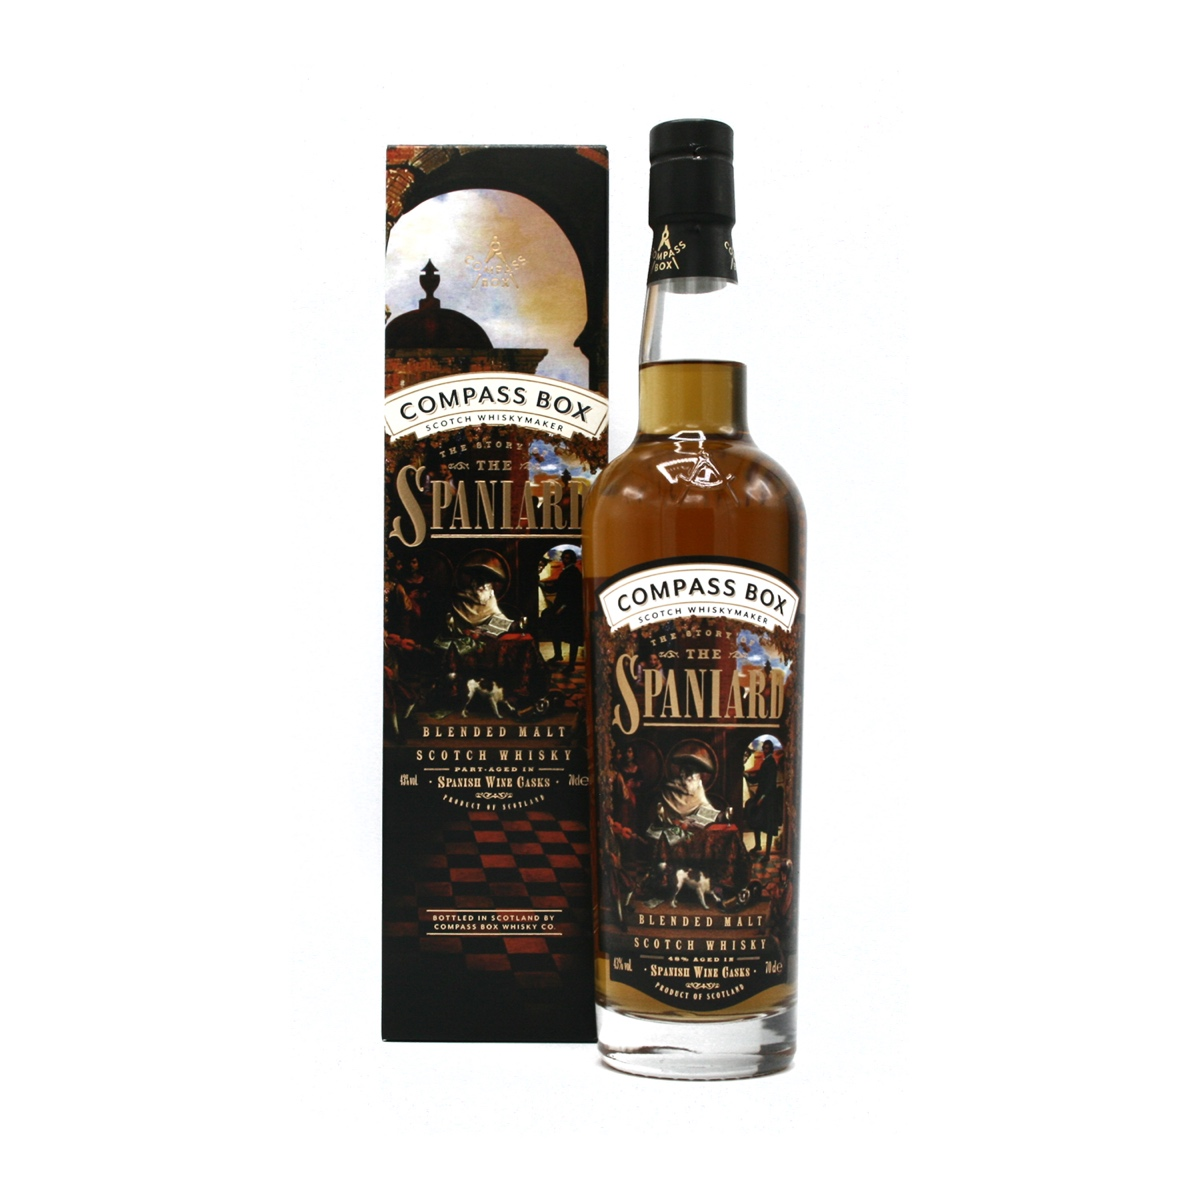 The Story of the Spaniard is Compass Box's first new permanent whisky in five years